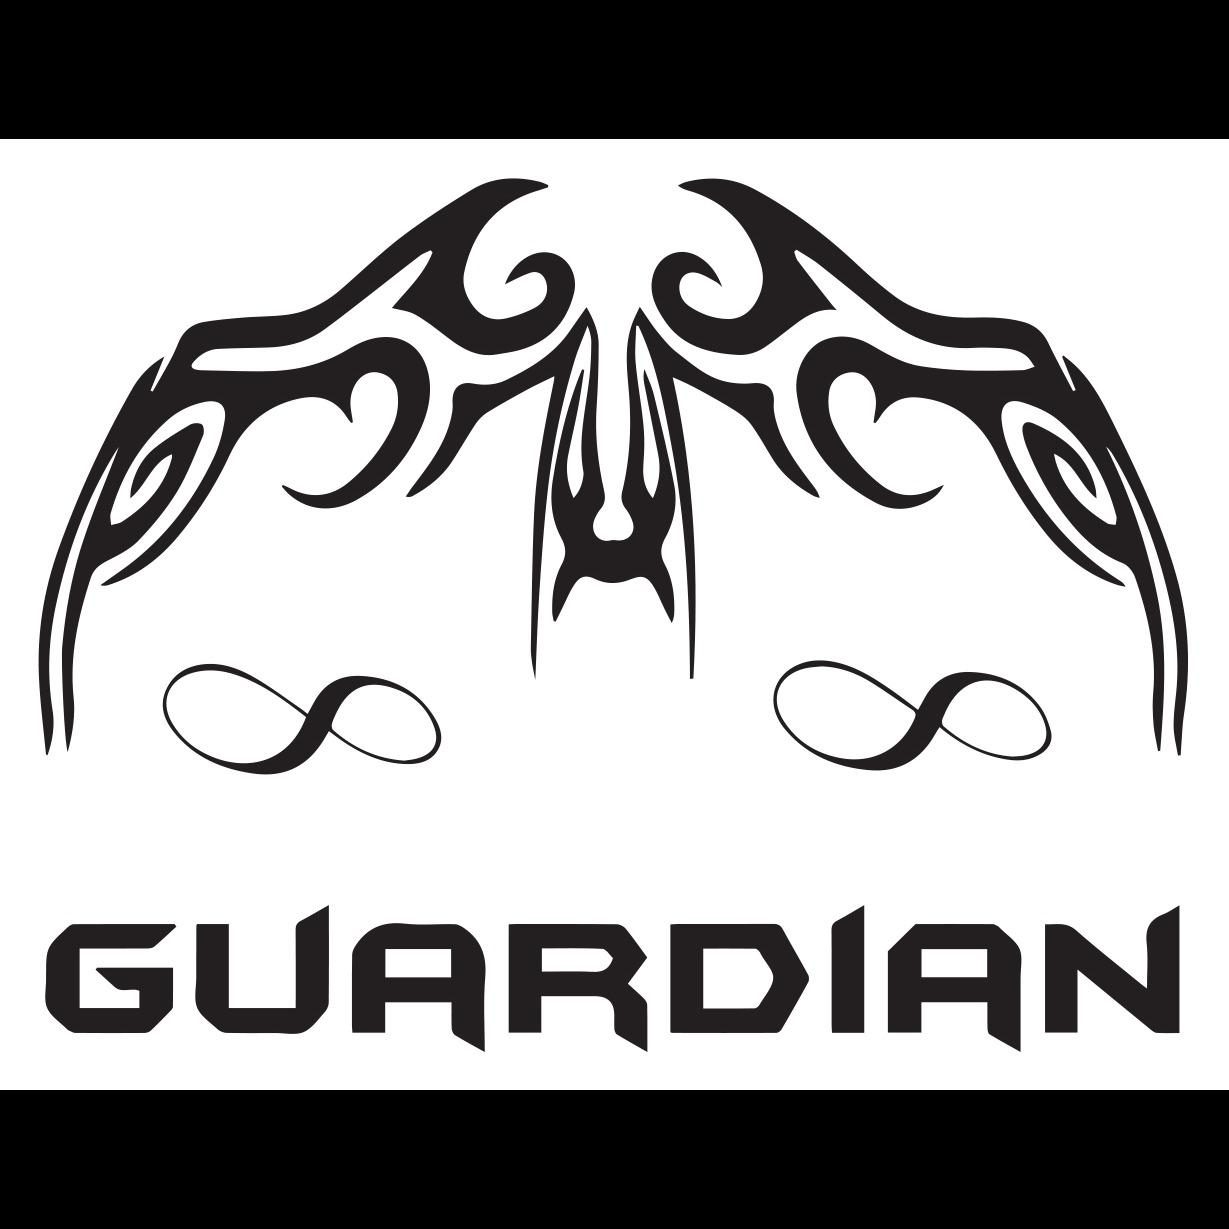 image of the Guardian88 Designs